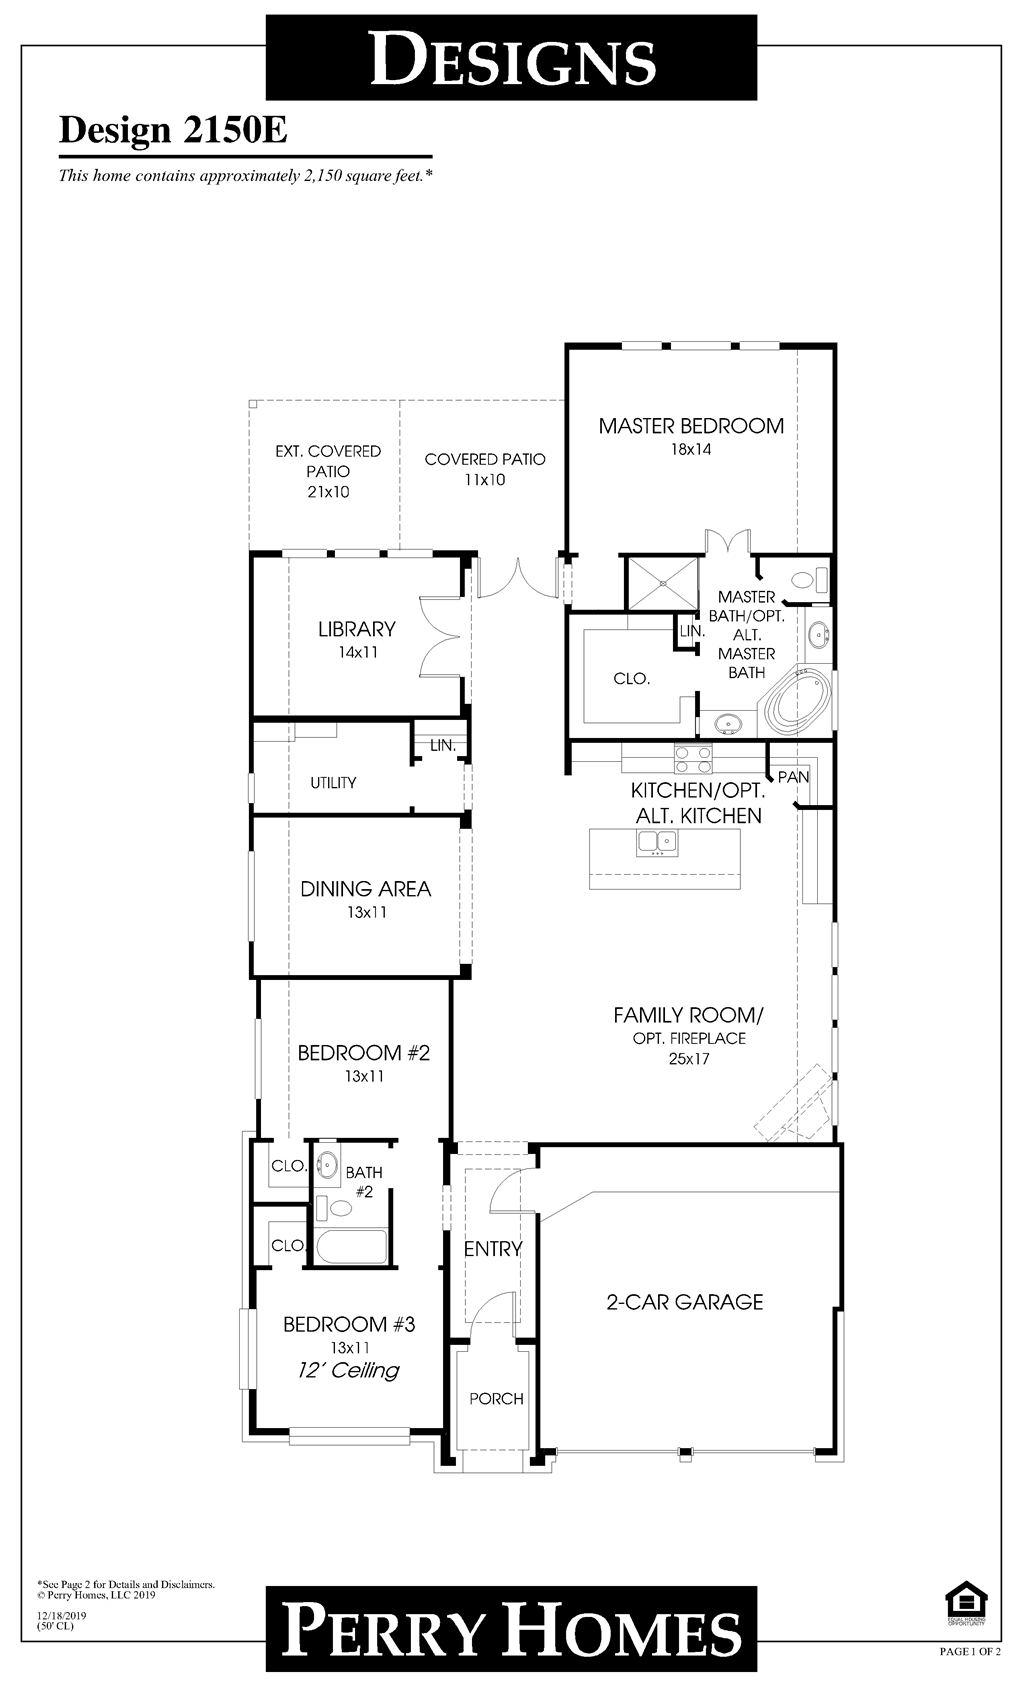 Floor Plan for 2150E